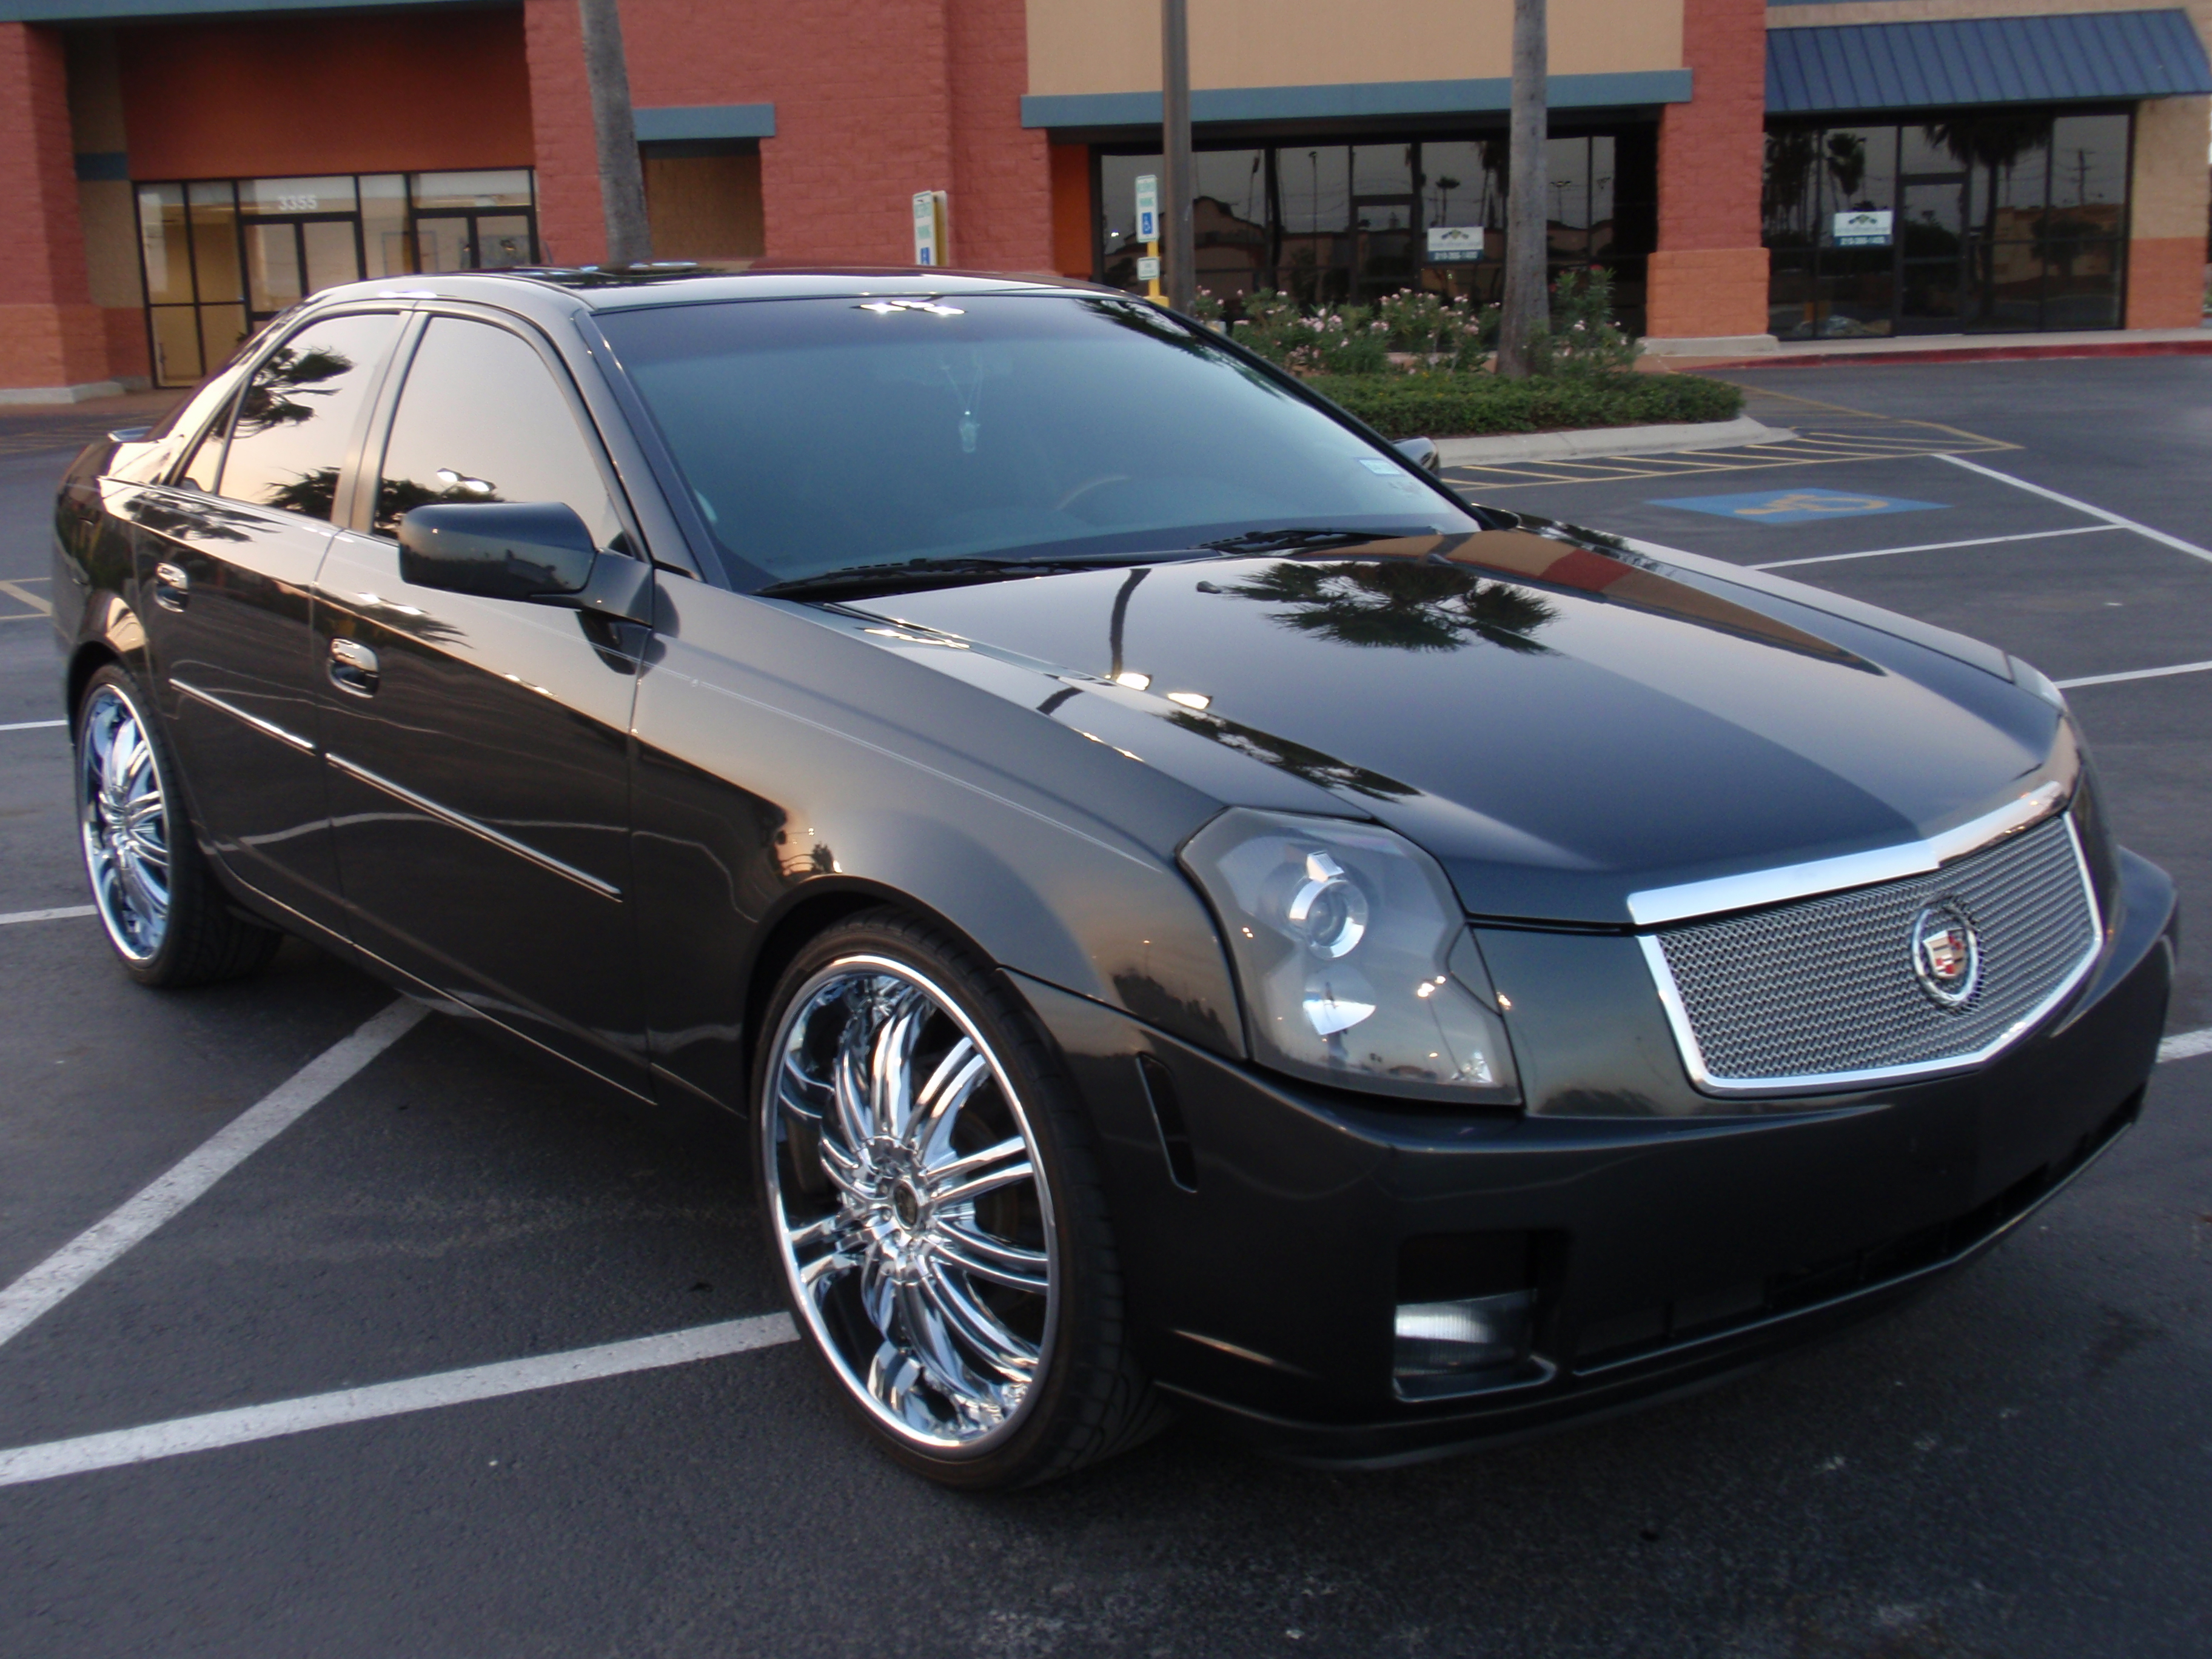 98saleens281 2005 cadillac cts specs photos modification info at cardomain. Black Bedroom Furniture Sets. Home Design Ideas